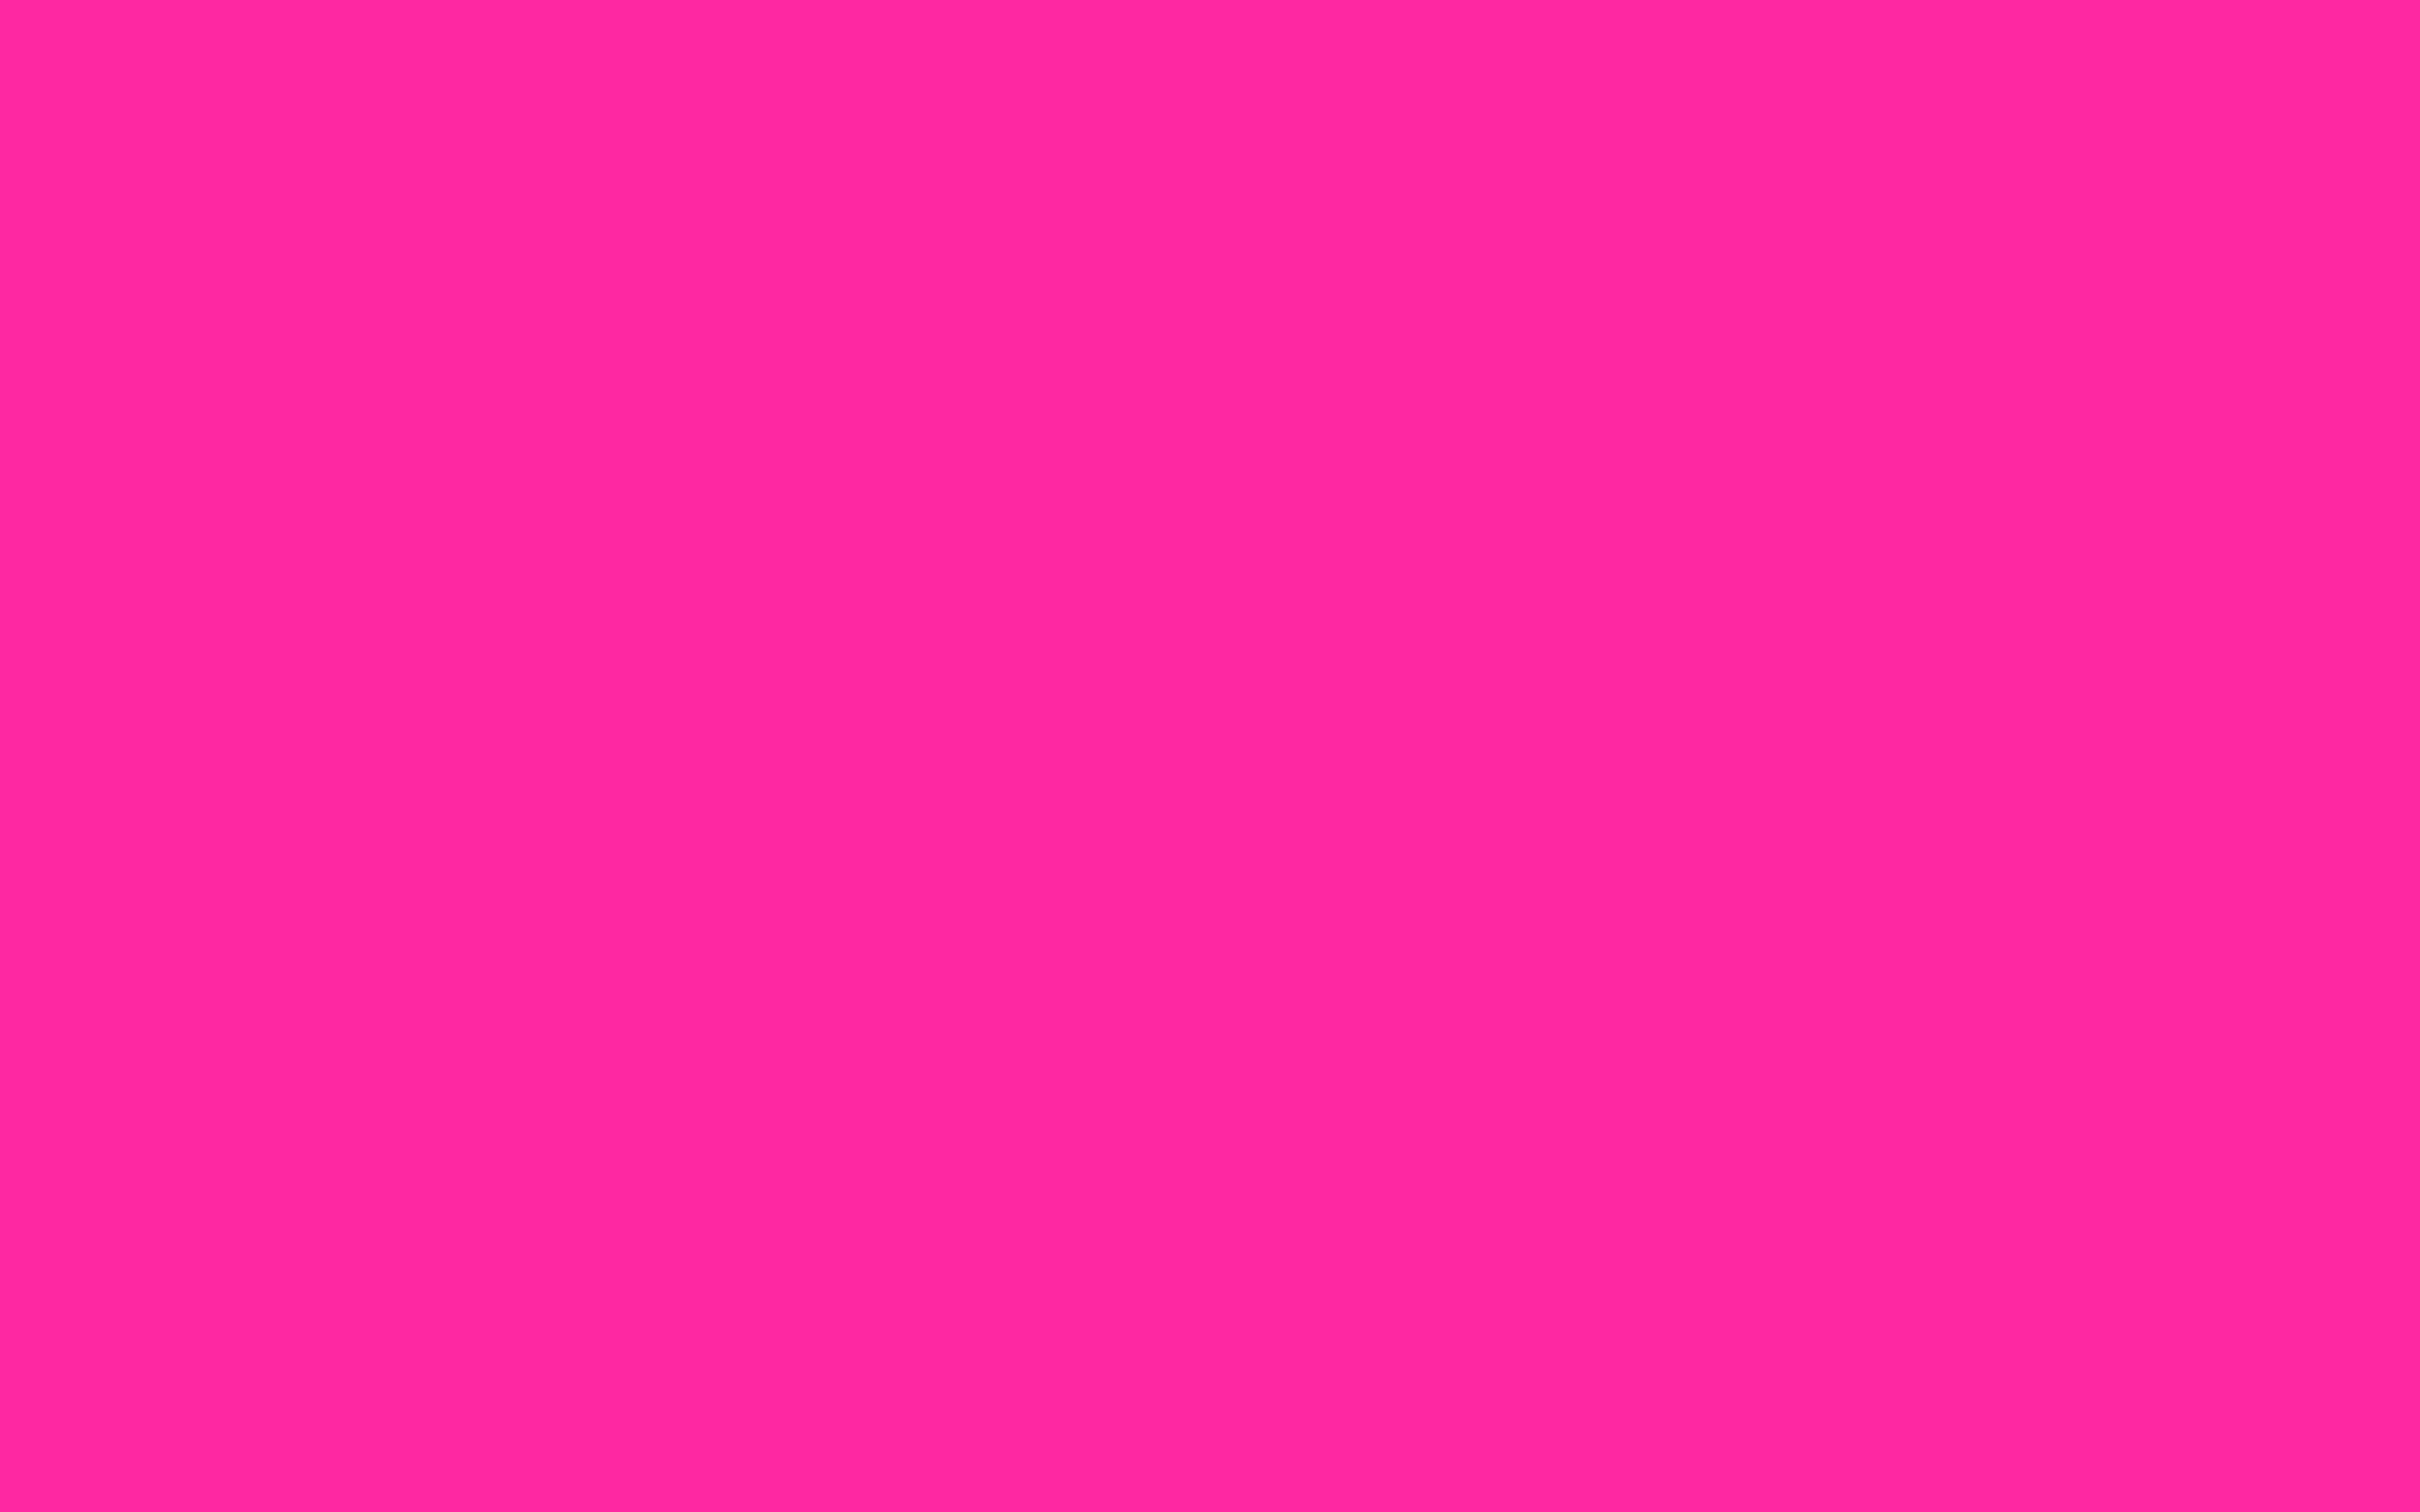 2560x1600 Persian Rose Solid Color Background